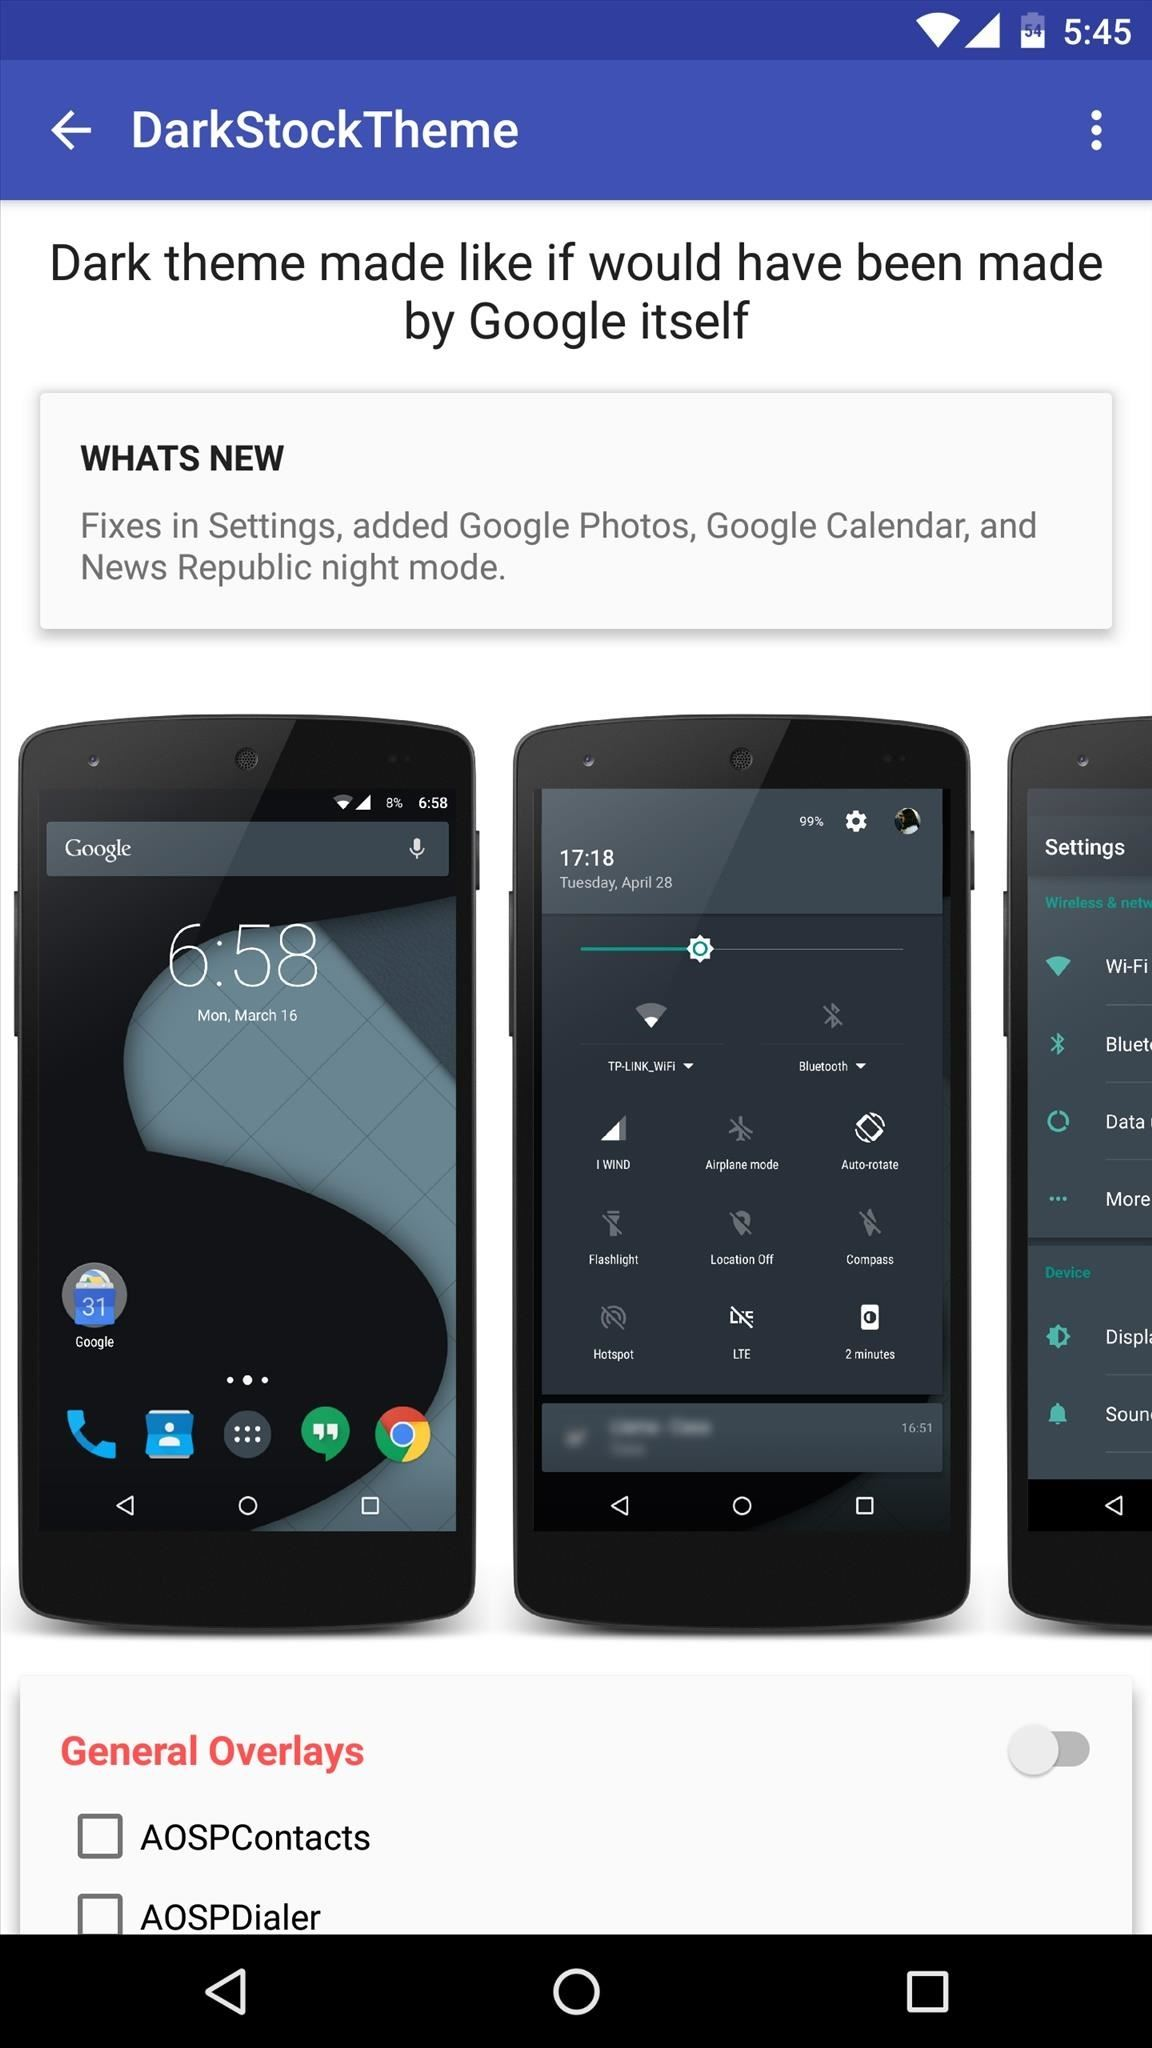 How to get android nougat features on your phone right now android one theme that almost perfectly replicates android nougats night mode is called darkstocktheme and it can be purchased for 120 if youd like to get an voltagebd Images